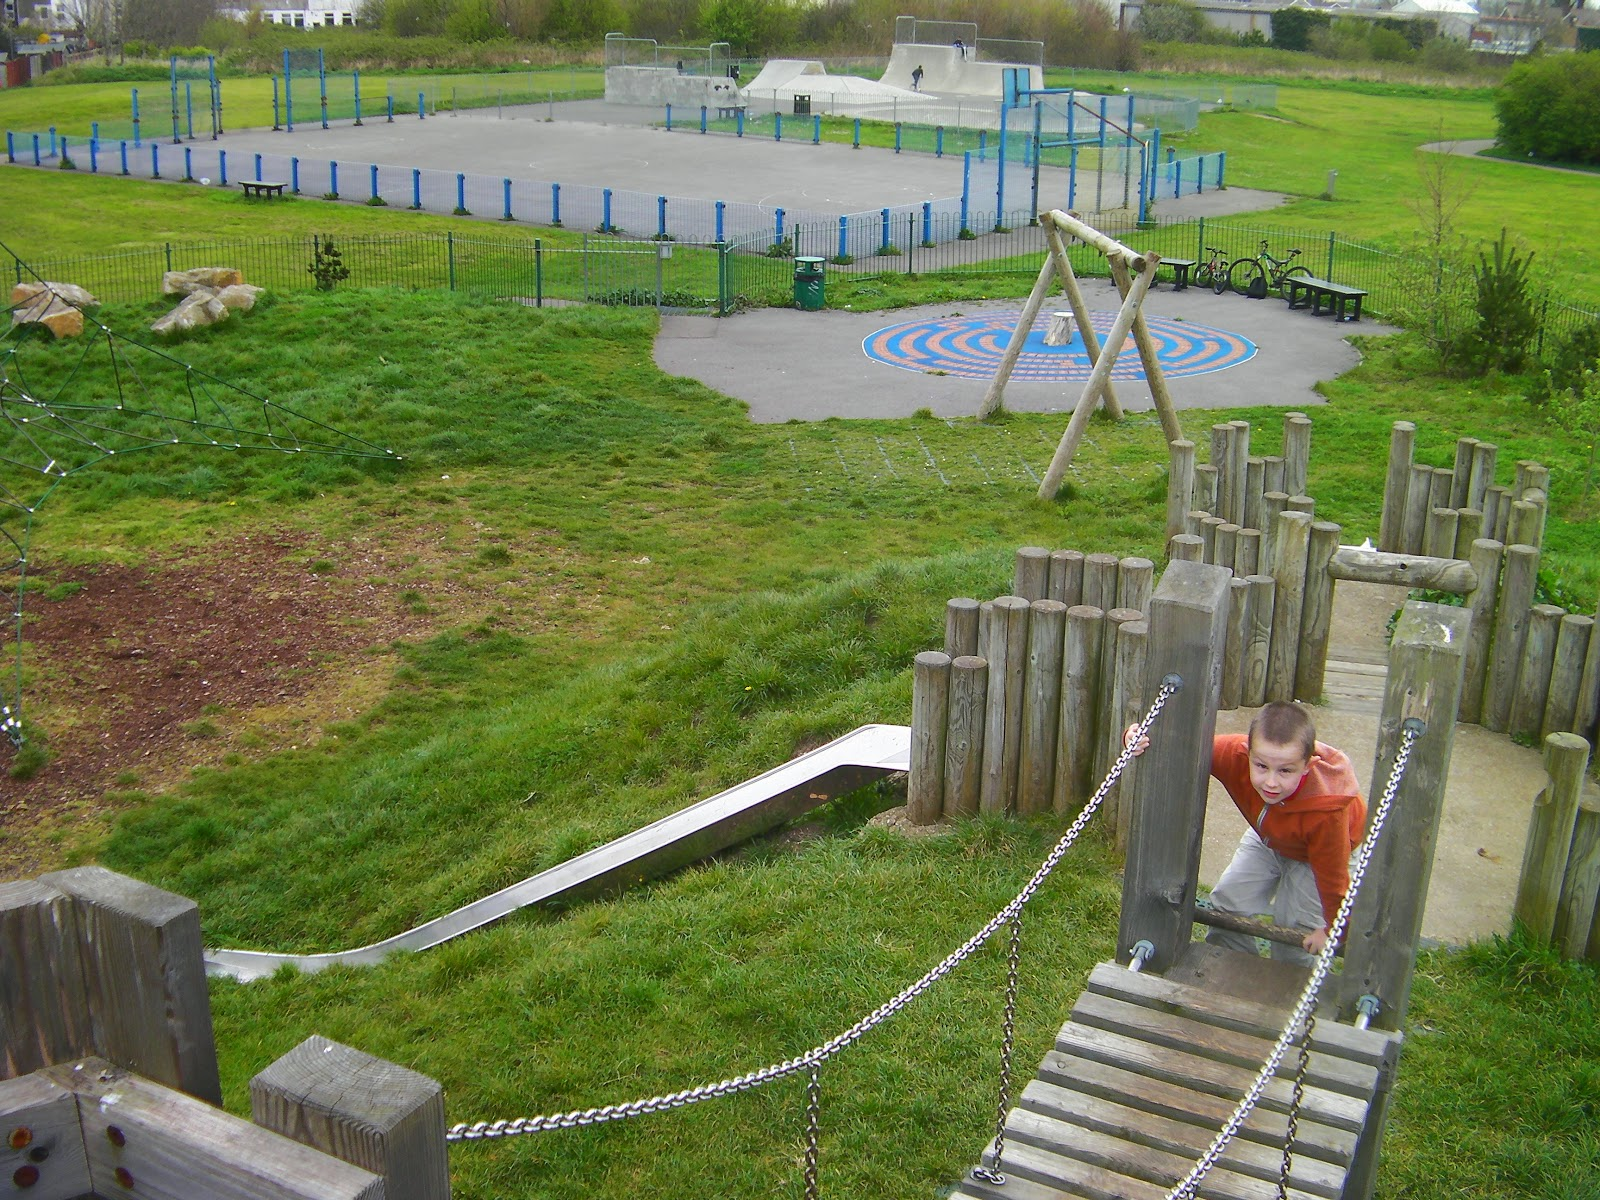 leesland road play park gosprt